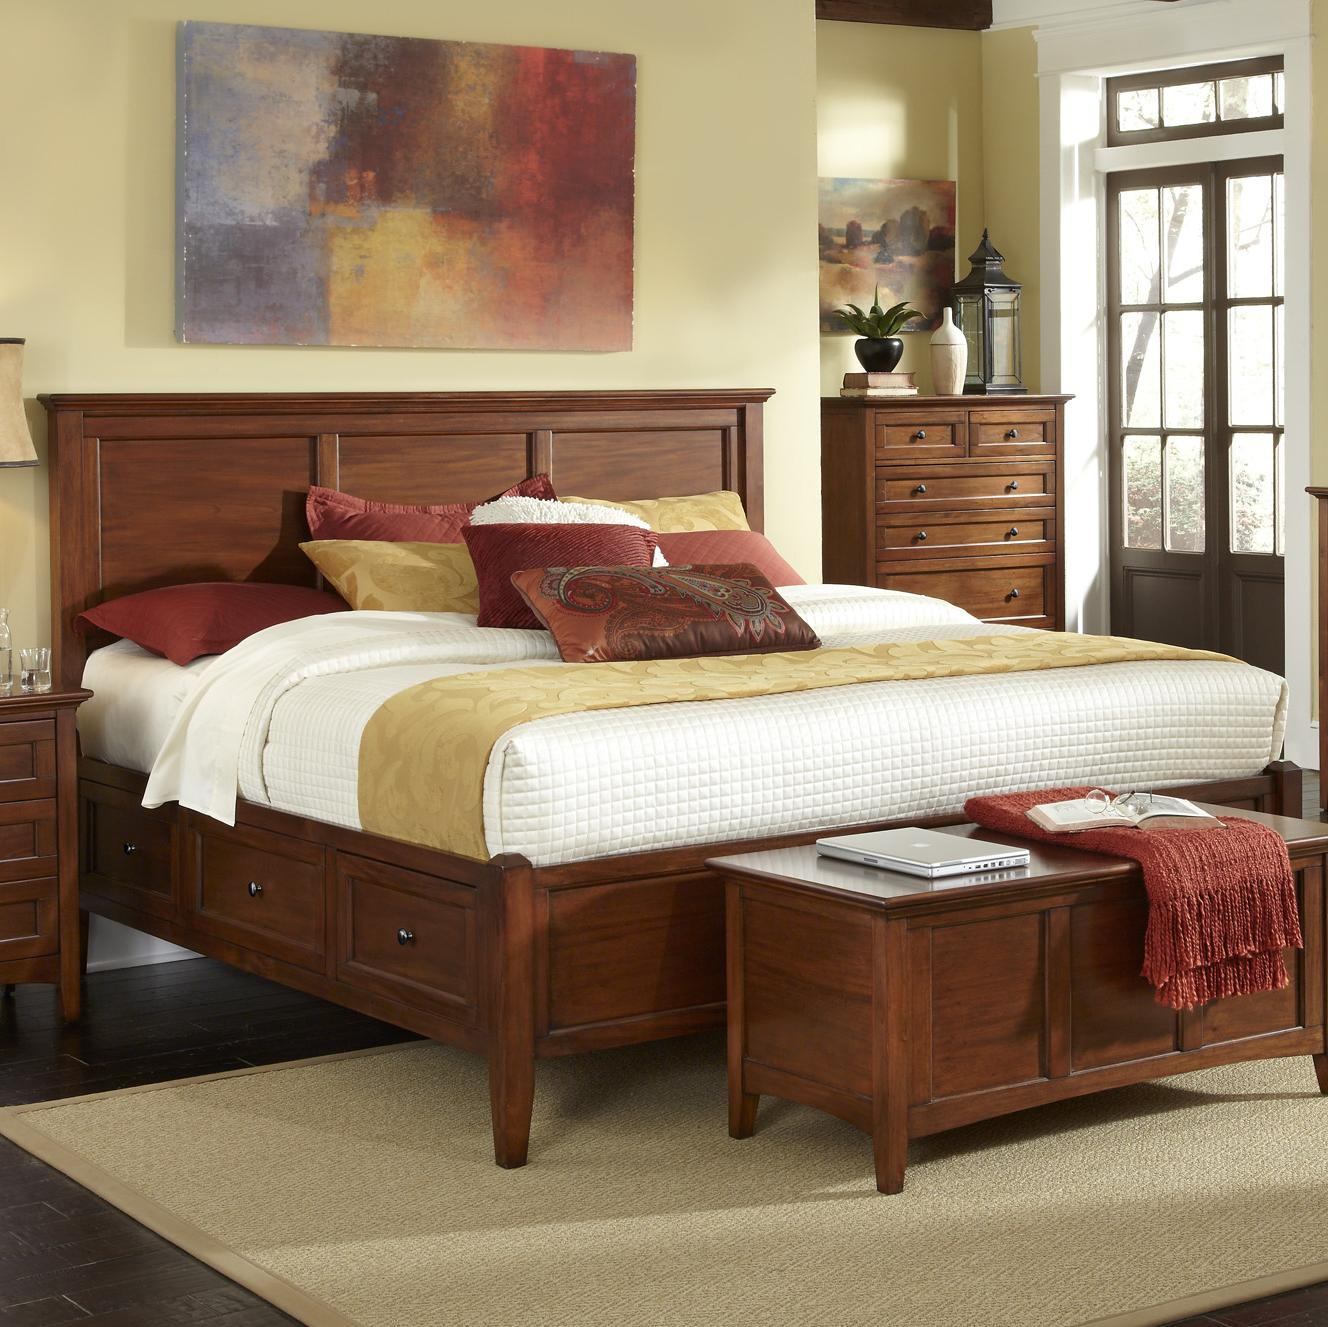 Westlake Queen Storage Bed by A-A at Walker's Furniture